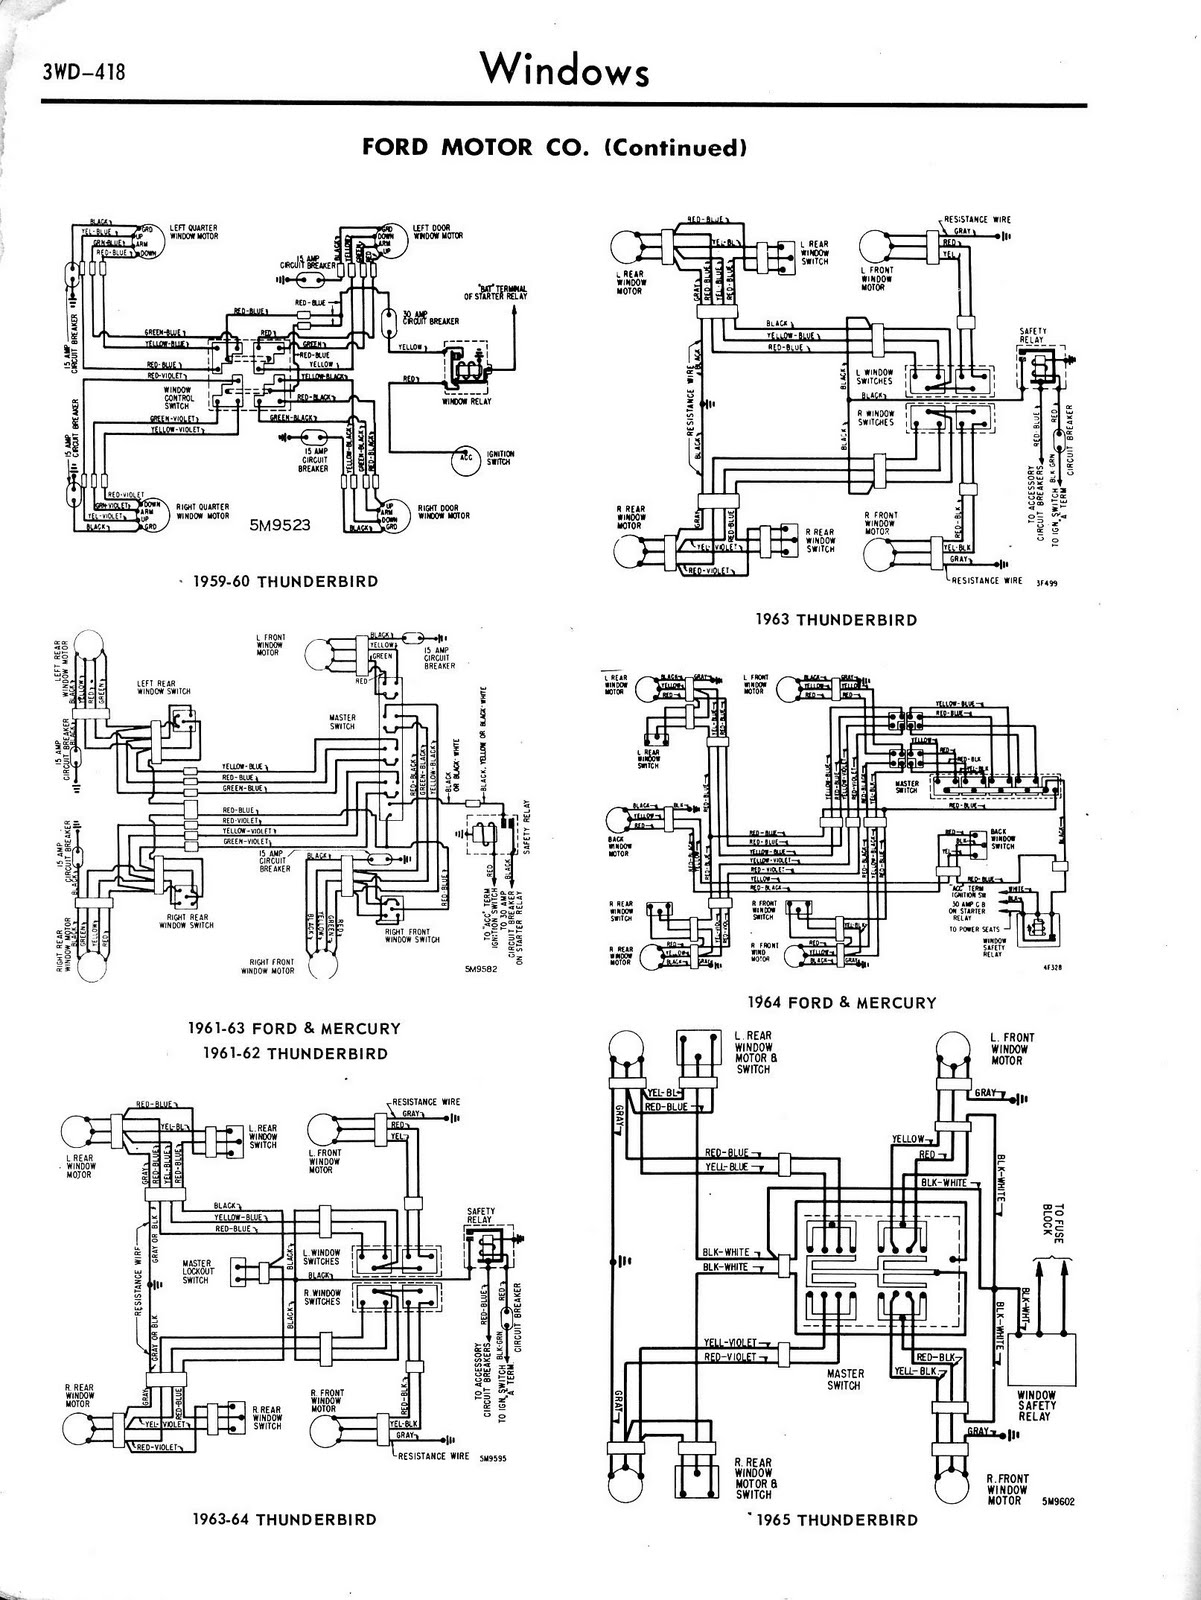 2004 Ford Thunderbird Engine Diagram Switch Wiring 88 Fuse Box Electrical Diagrams Schematics 1980